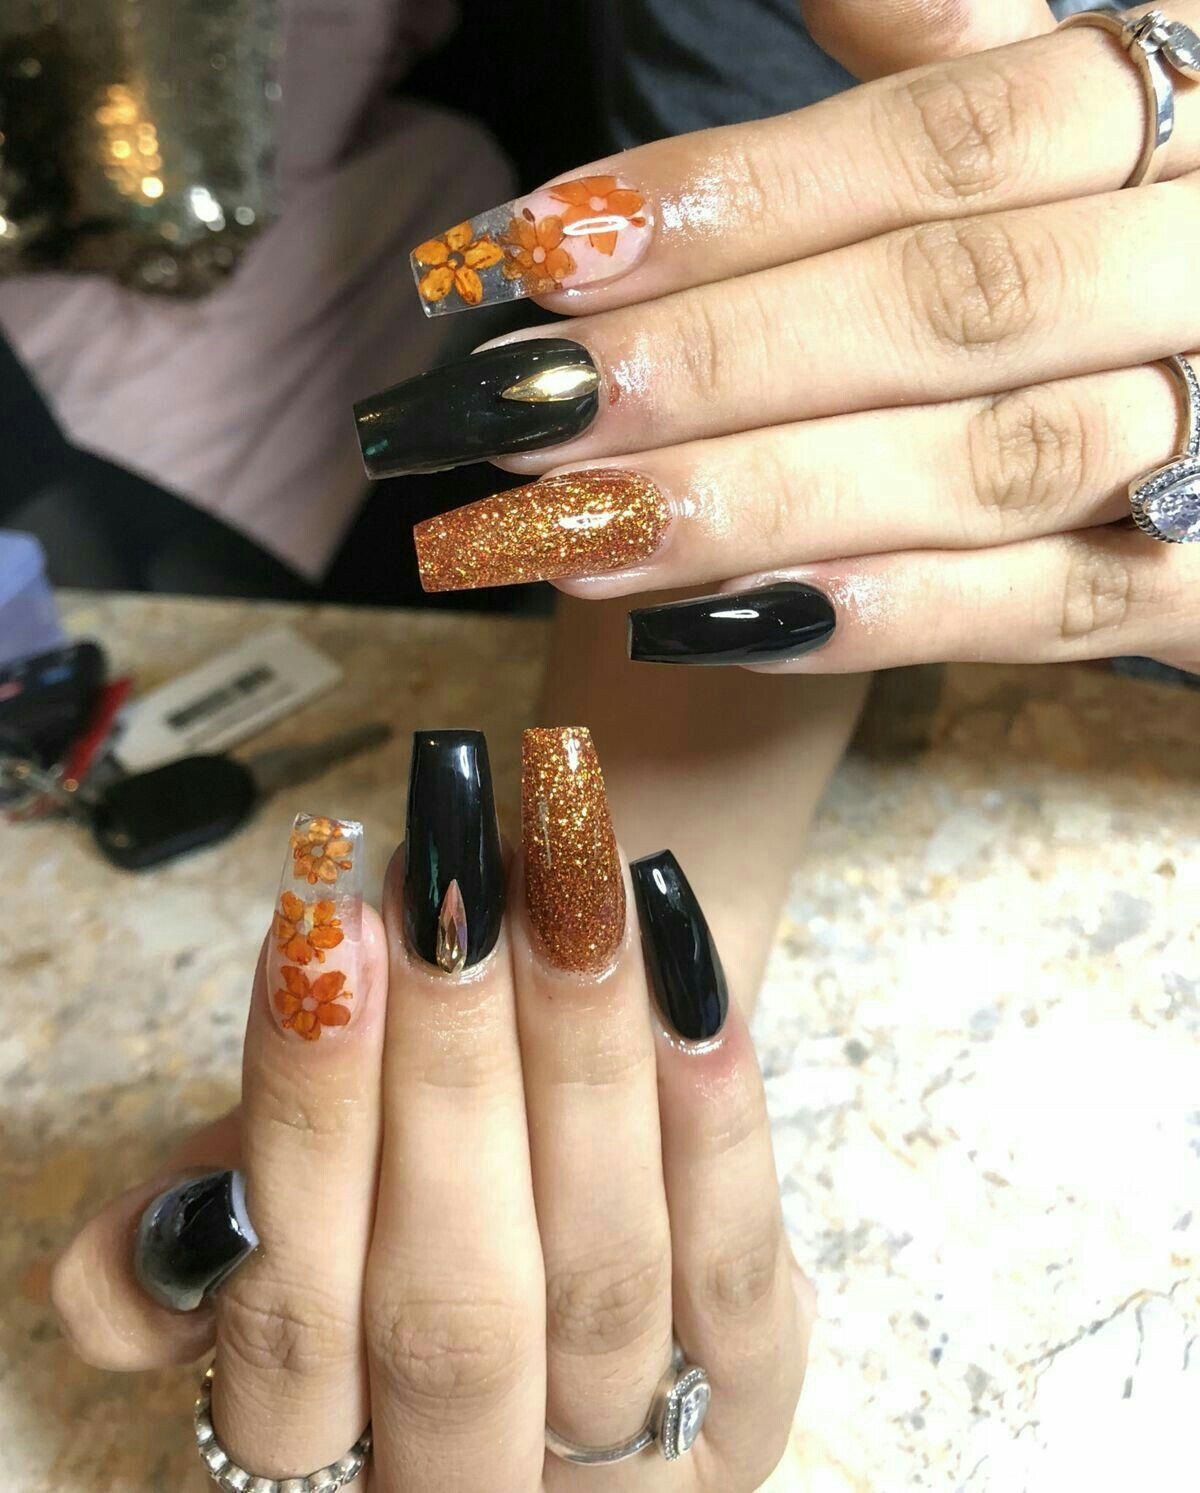 Pin by India on Nails in 2019